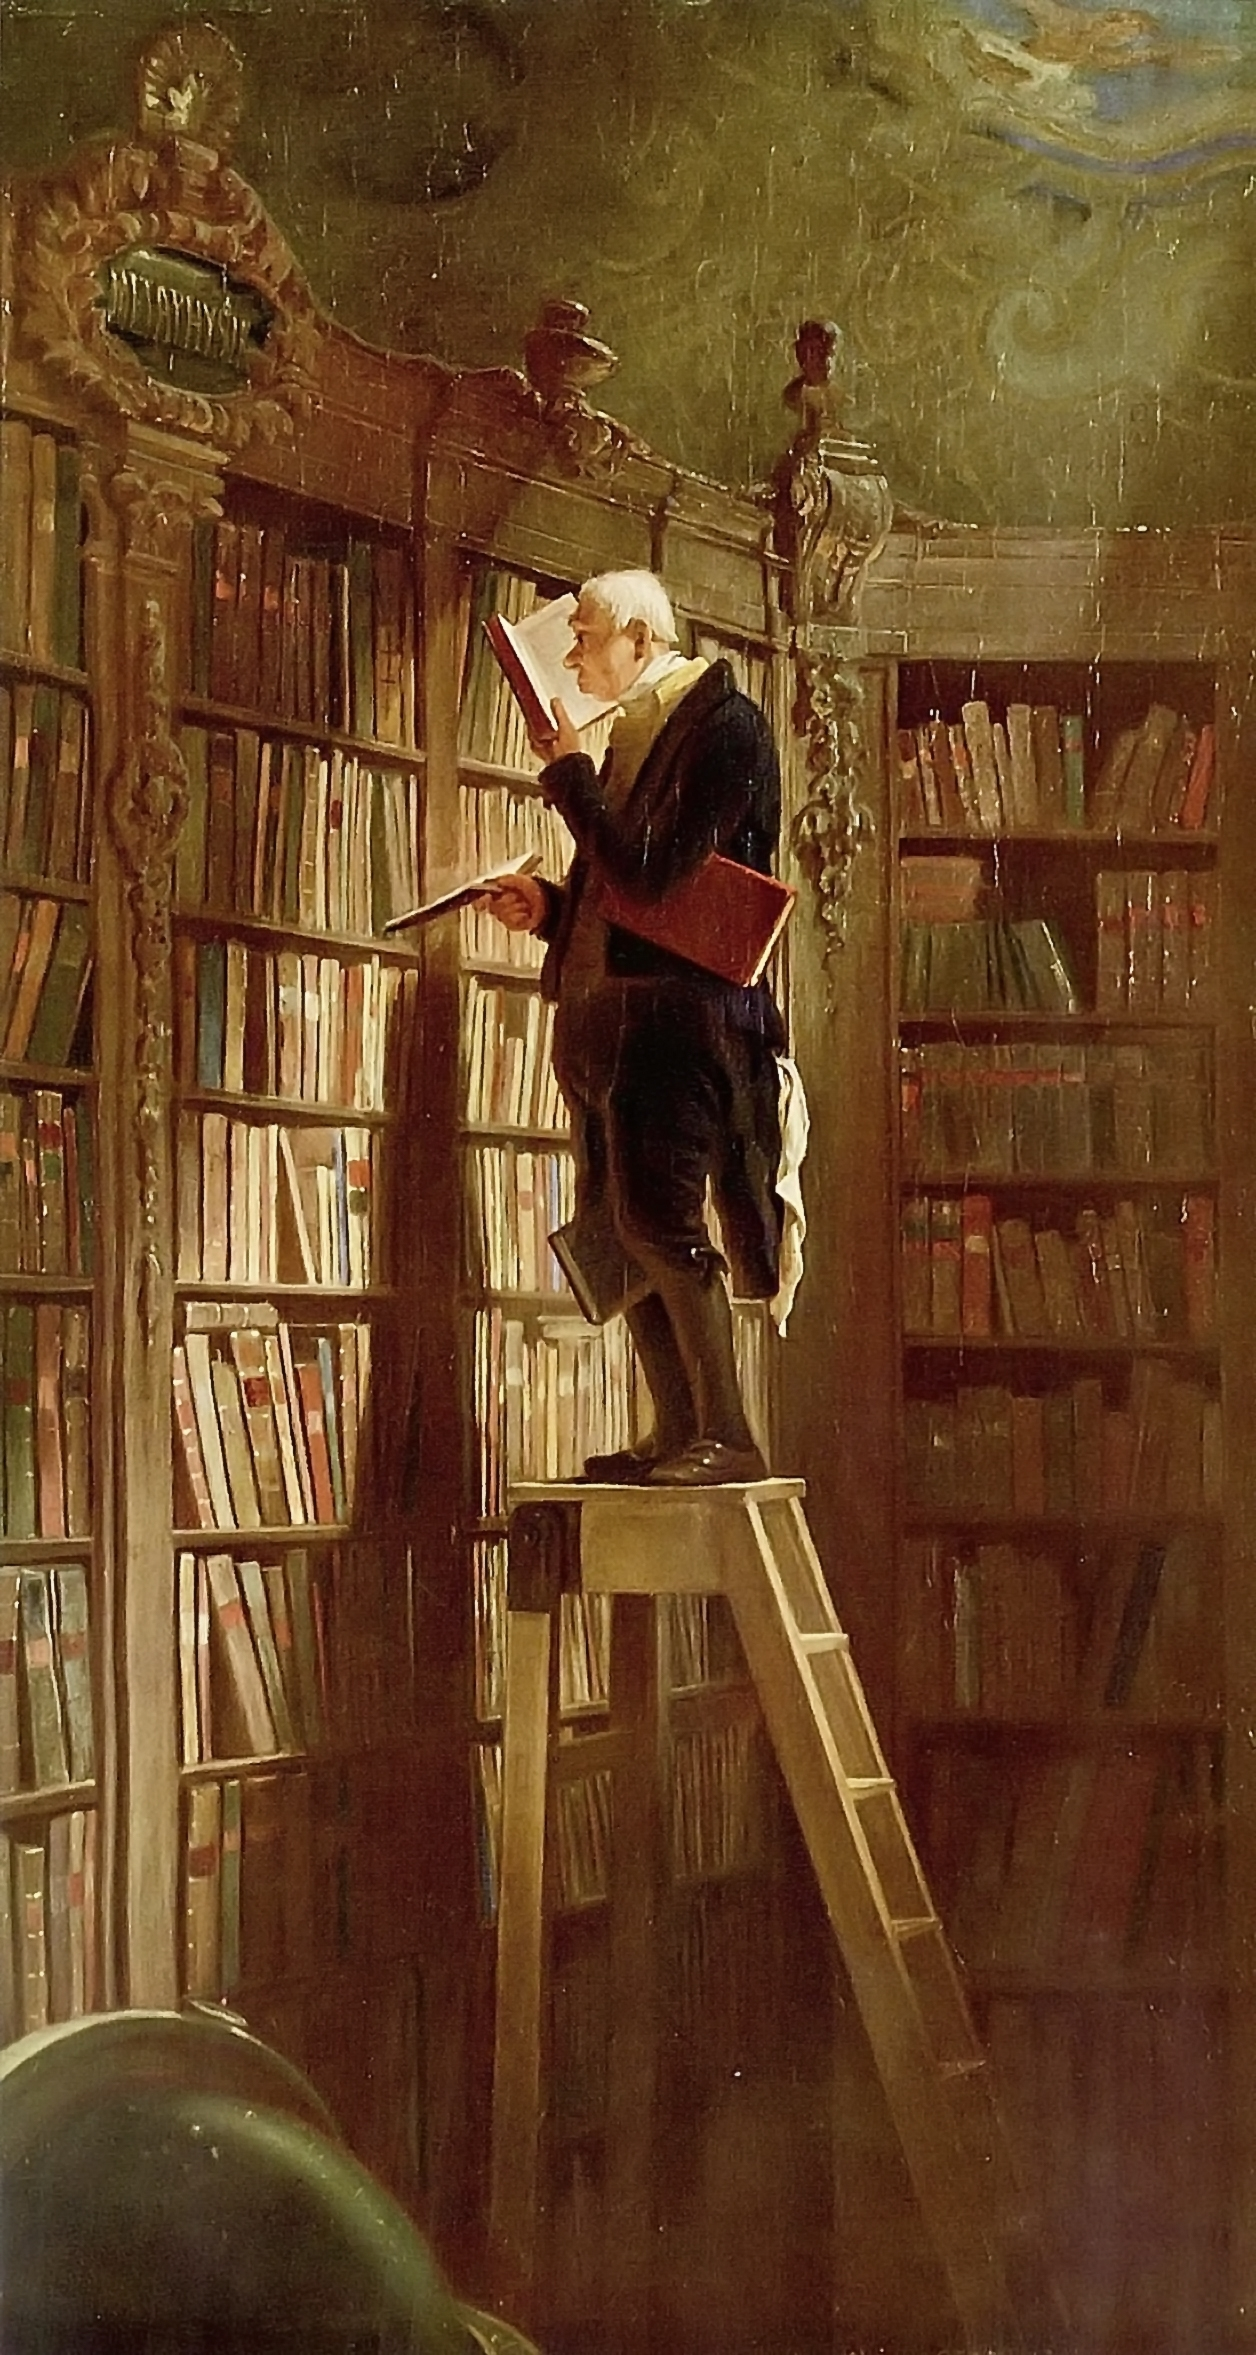 Painting 'The Bookworm' by Carl Spitzweg, version of ca. 1850, now located at the Museum Georg Schäfer in Schweinfurt, Germany.